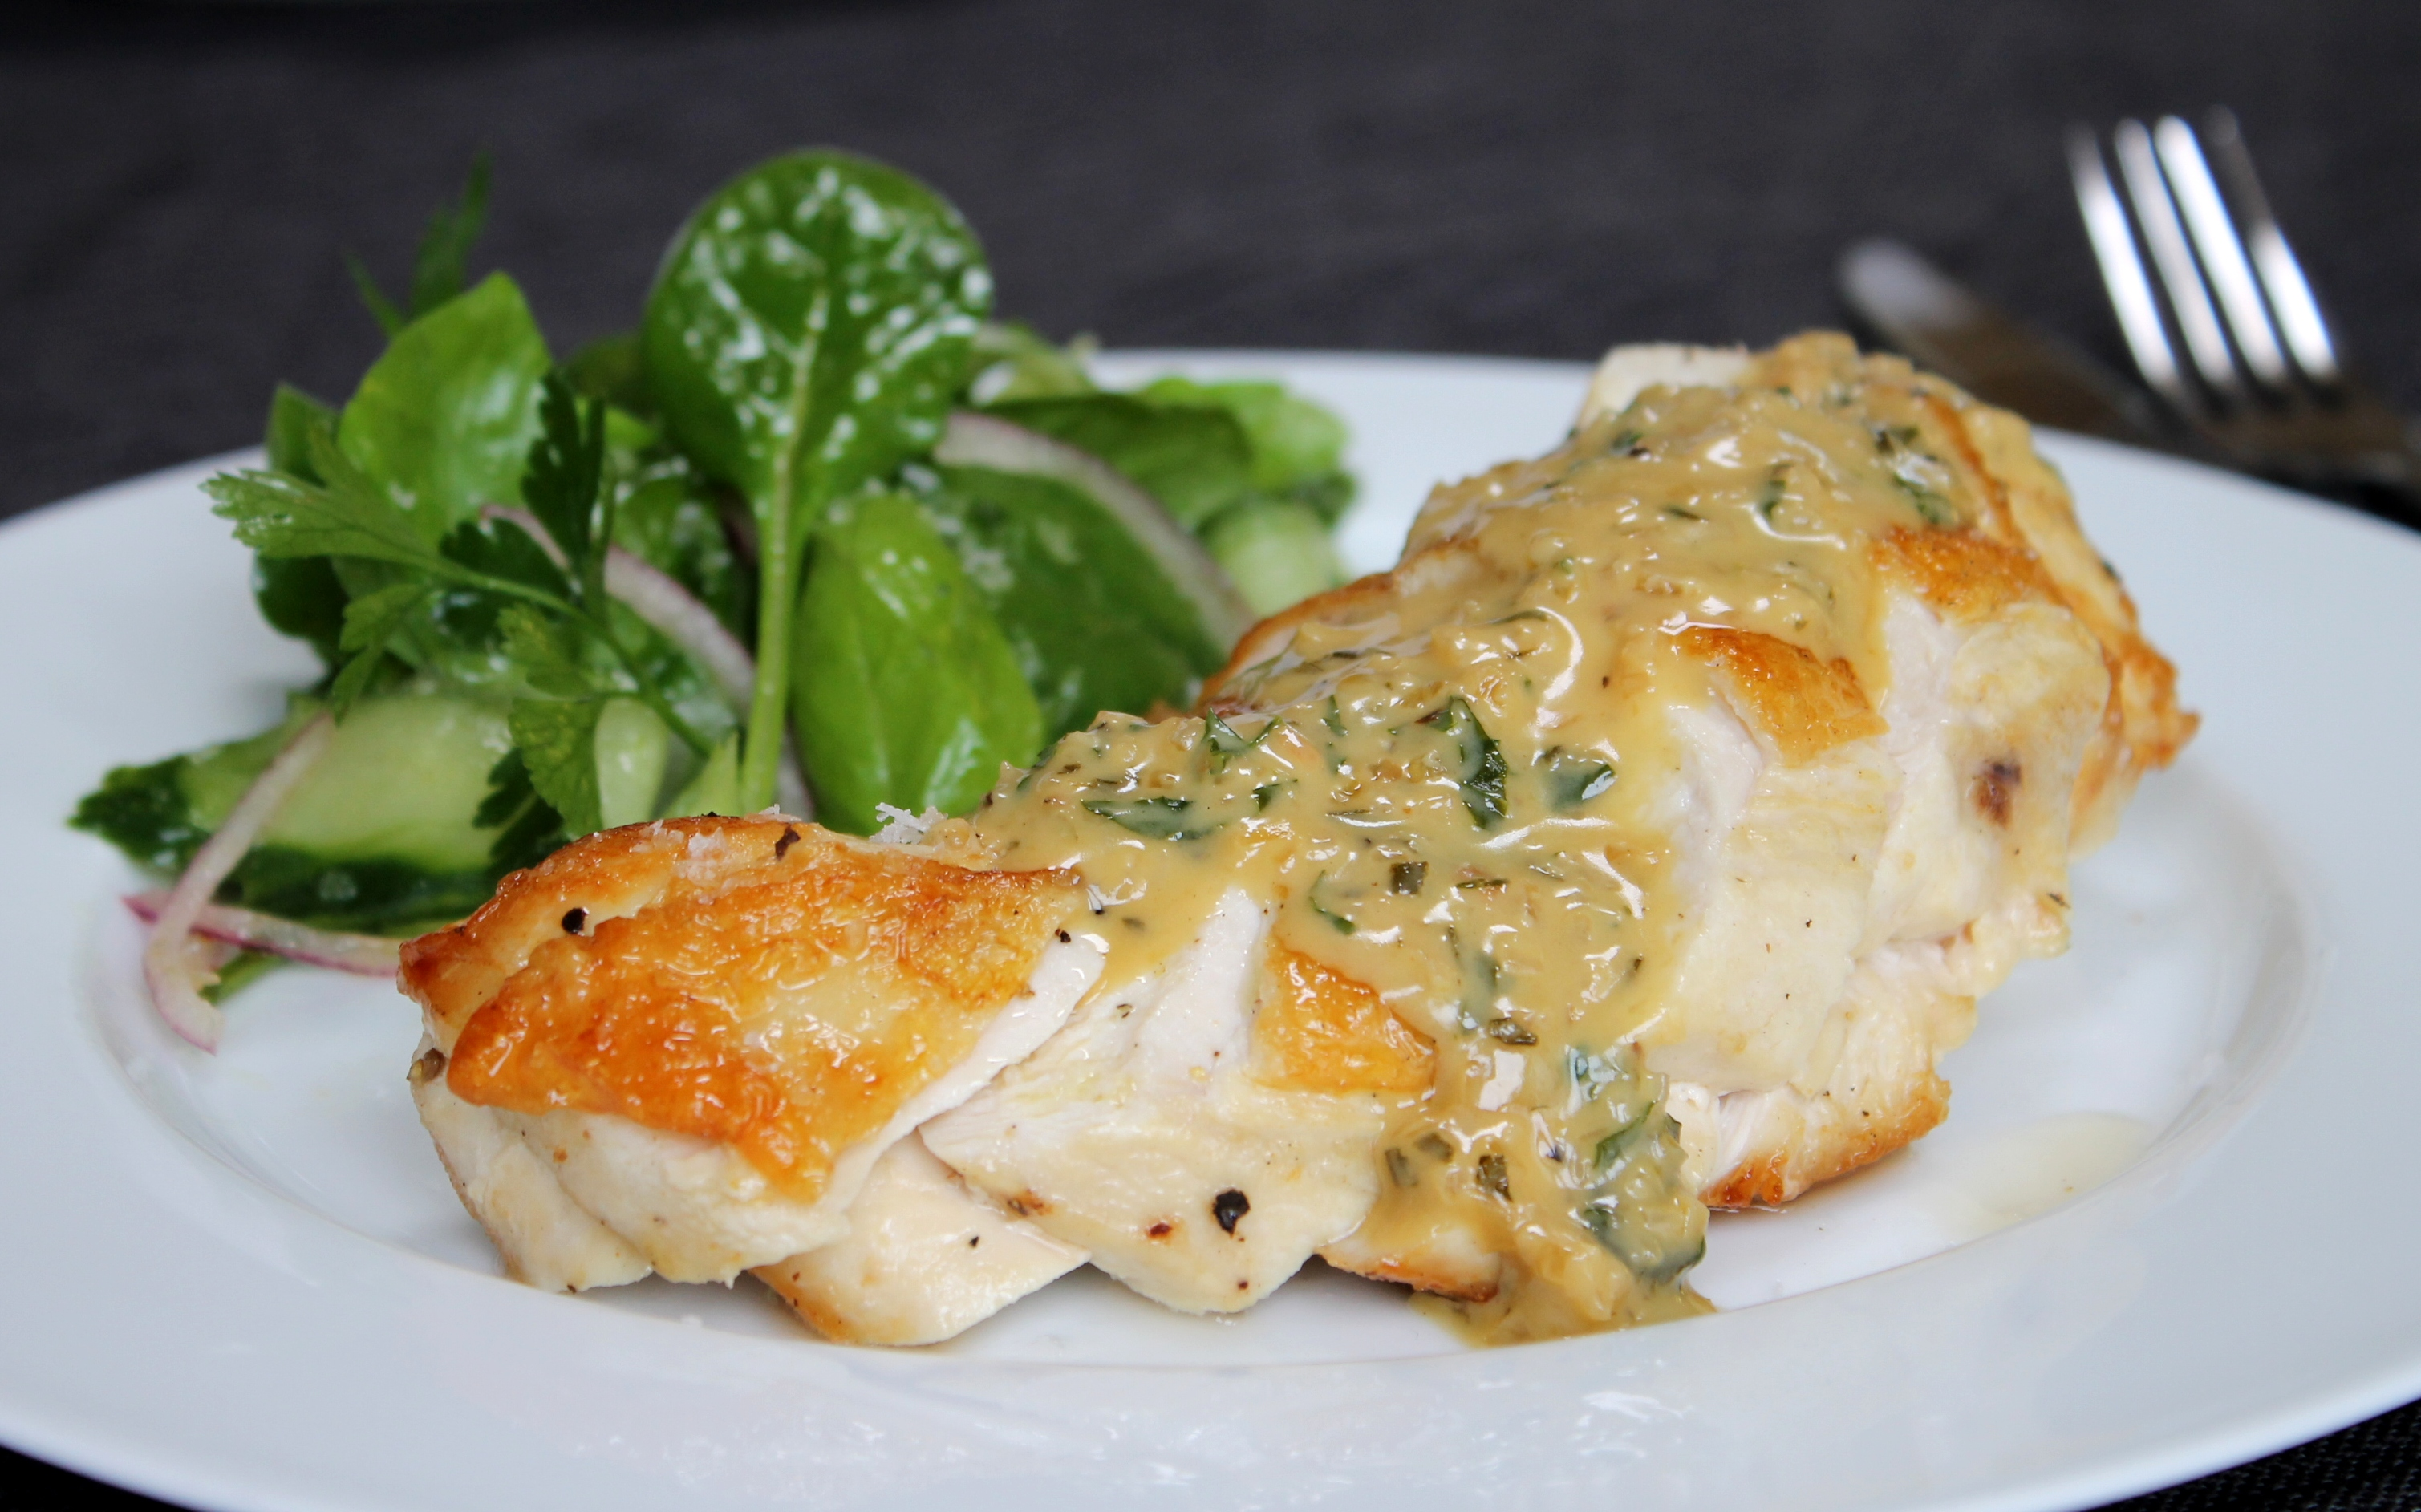 ... chicken breast with creamy garlic & herb sauce - ChelseaWinter.co.nz